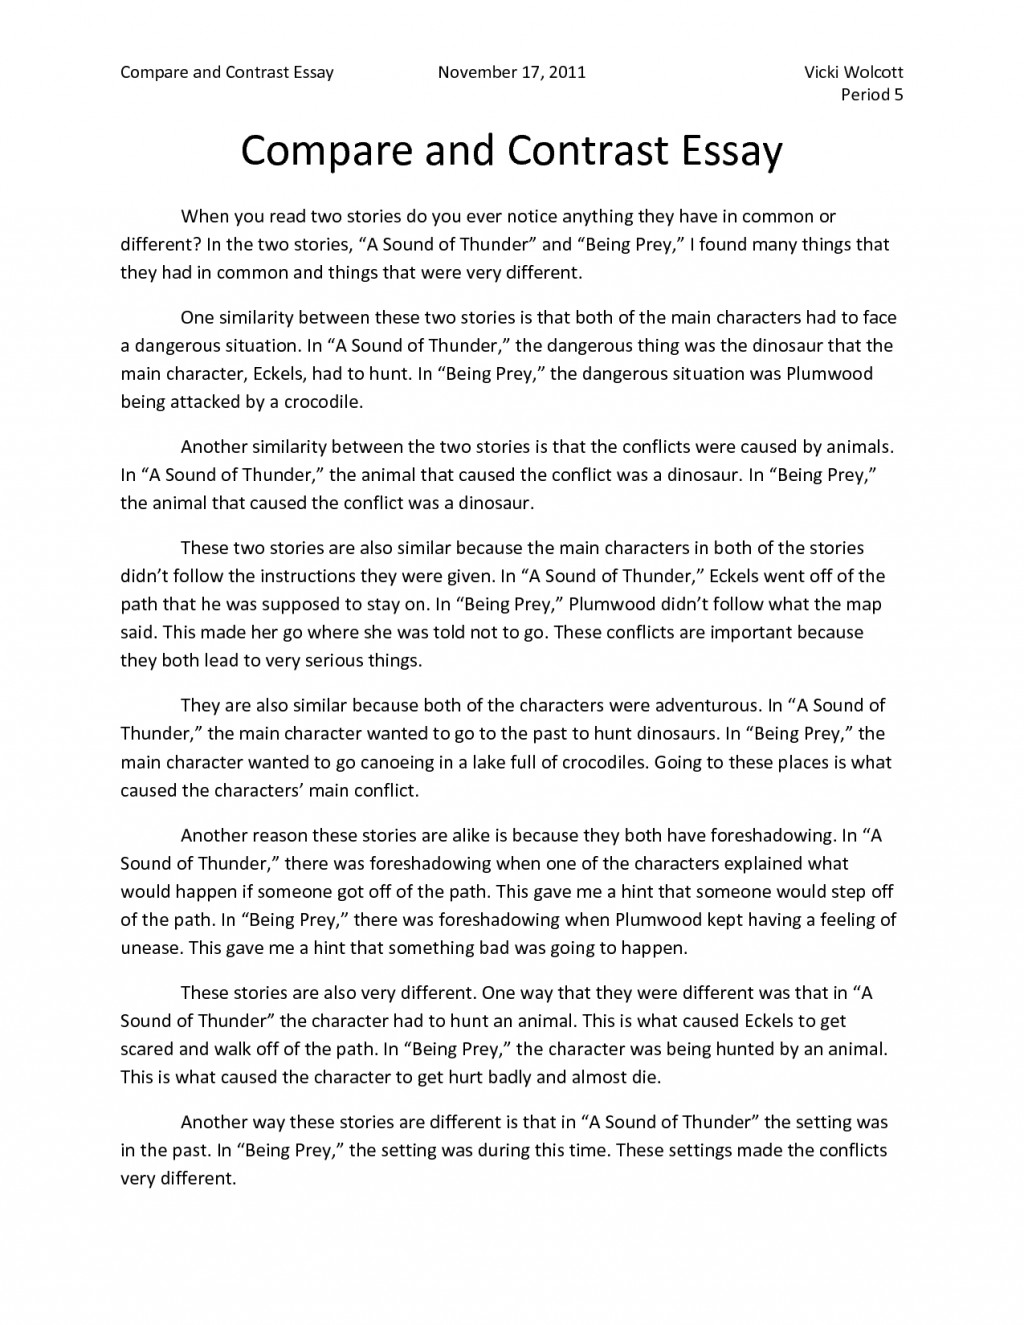 006 Gallery Compare And Contrast Essay Template Drawing Art Throughout Colleges Introduction Question Scholarship Free Edexcel Conclusion Extended Essays Best Rubric Elementary Topics Toefl 6th Grade Large